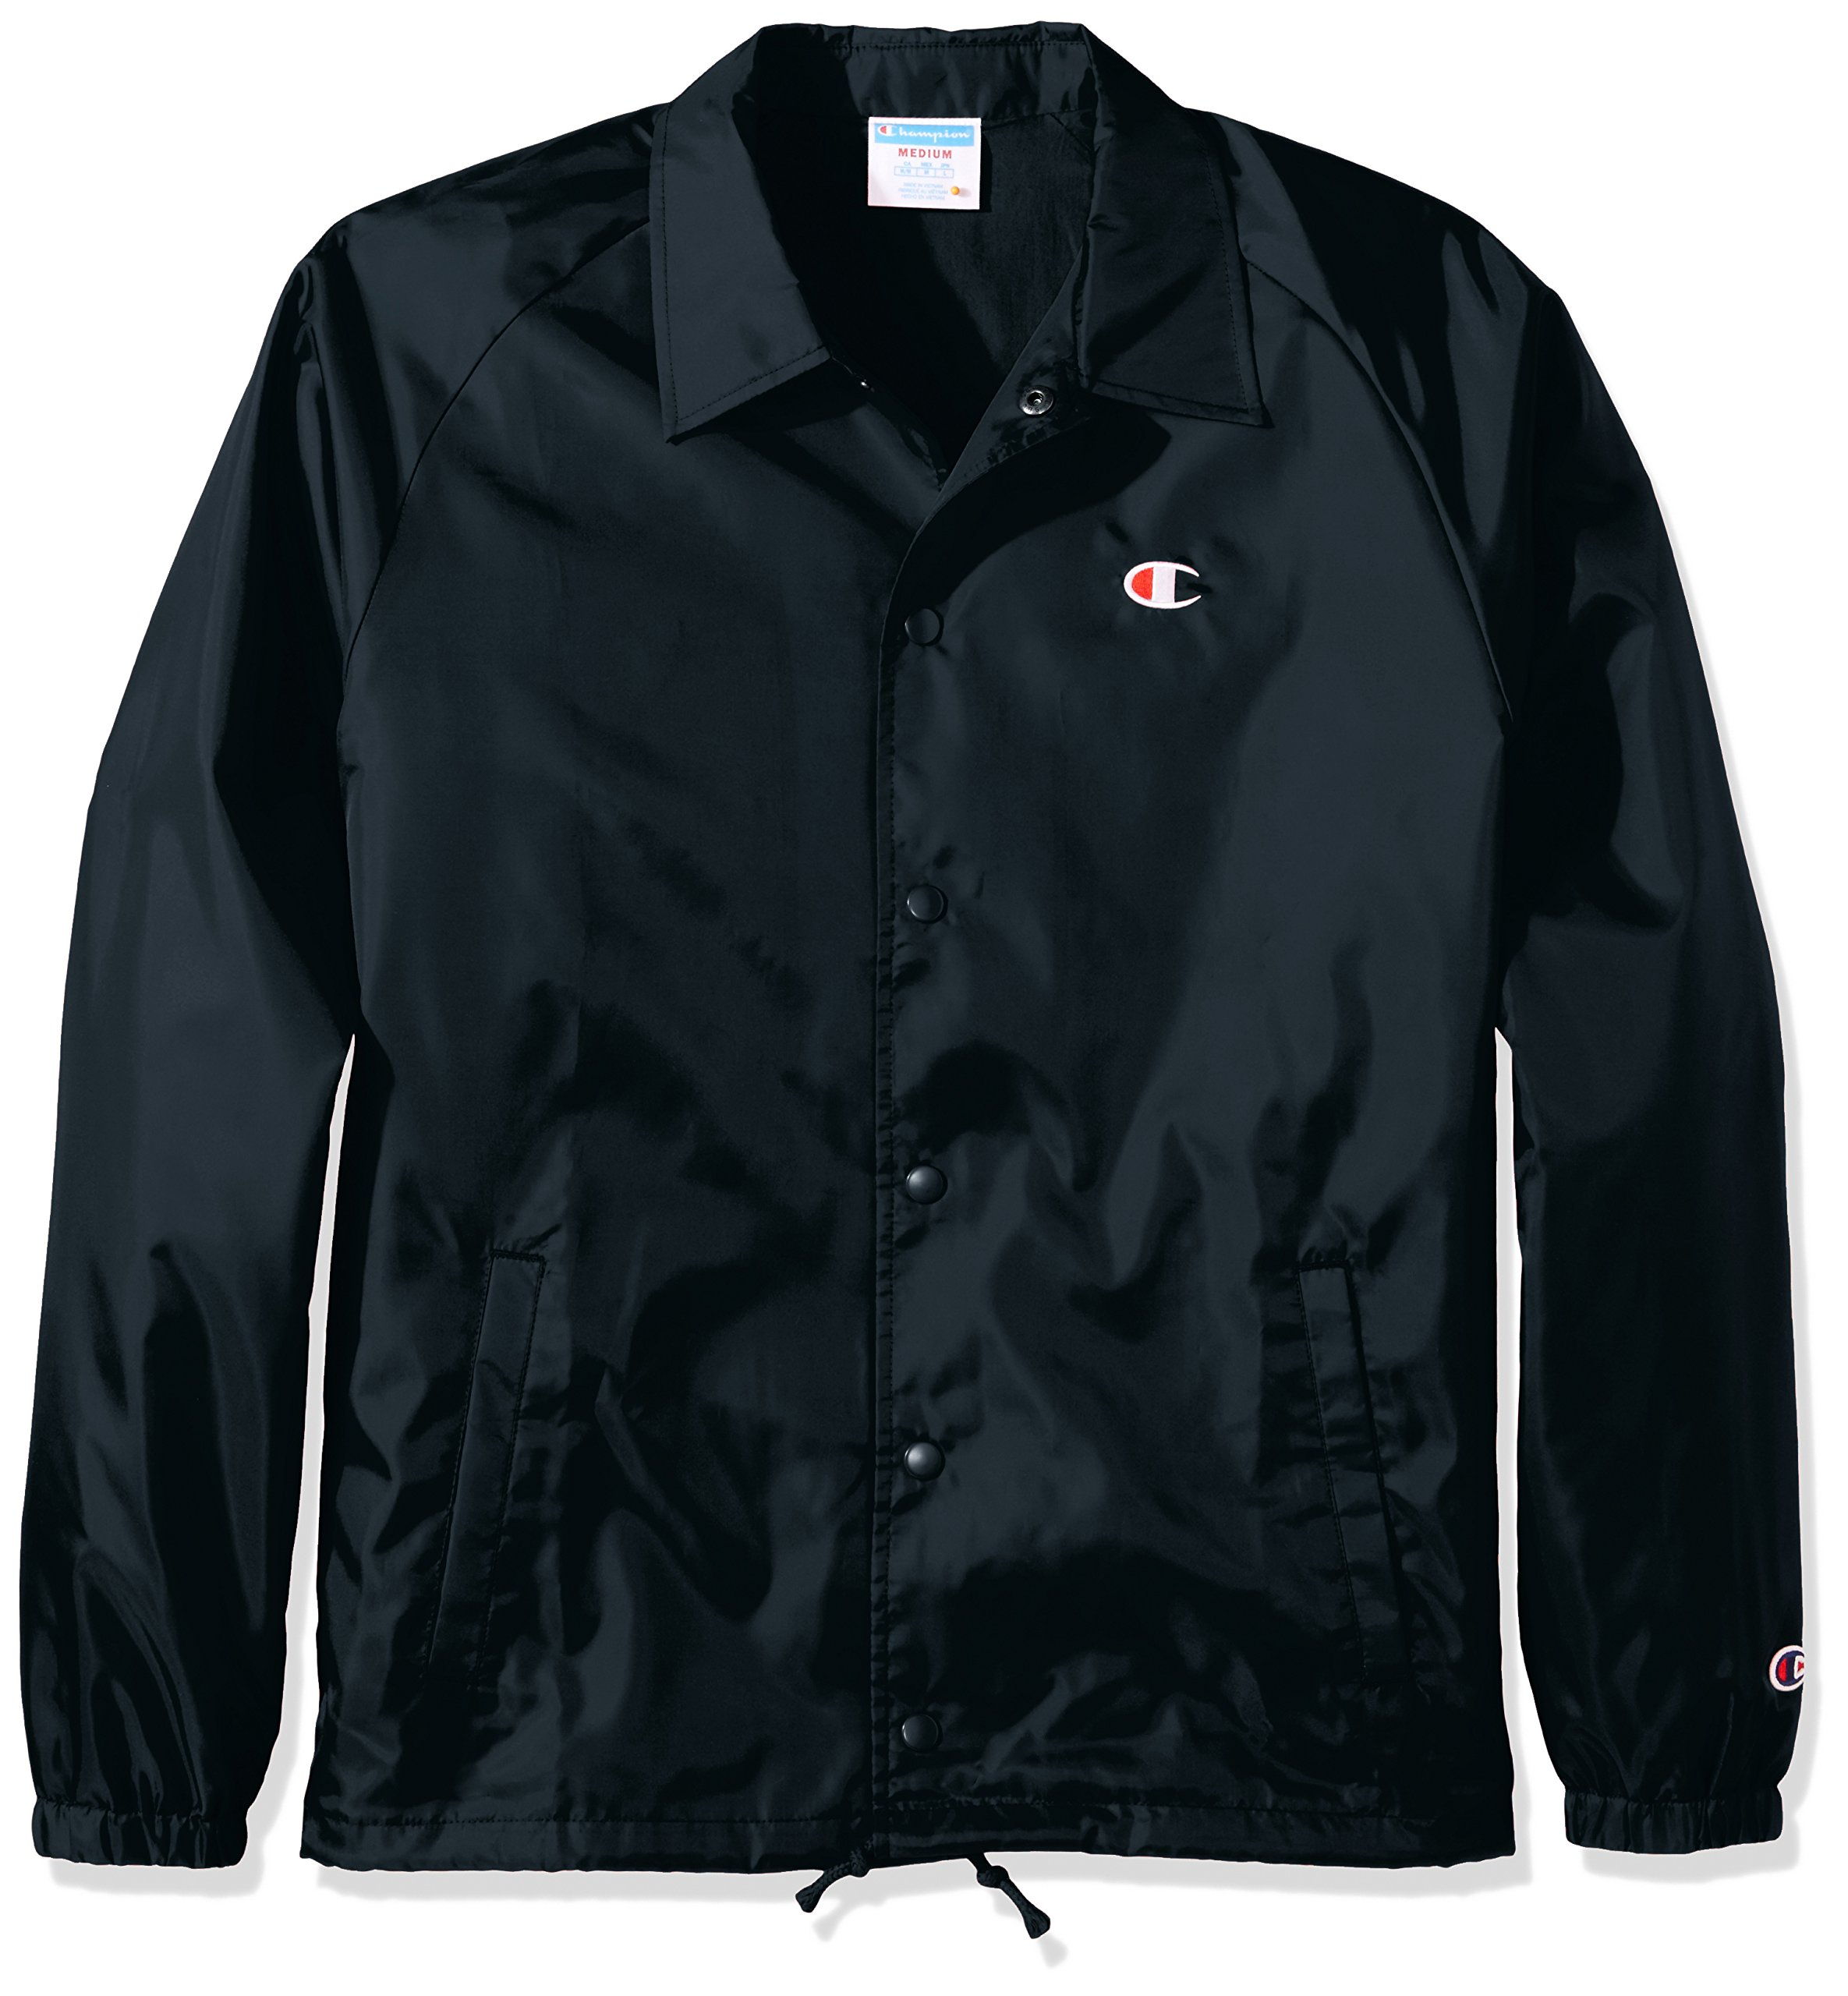 Champion LIFE Men's Coaches Jacket West Breaker Edition, Black, S by Champion LIFE